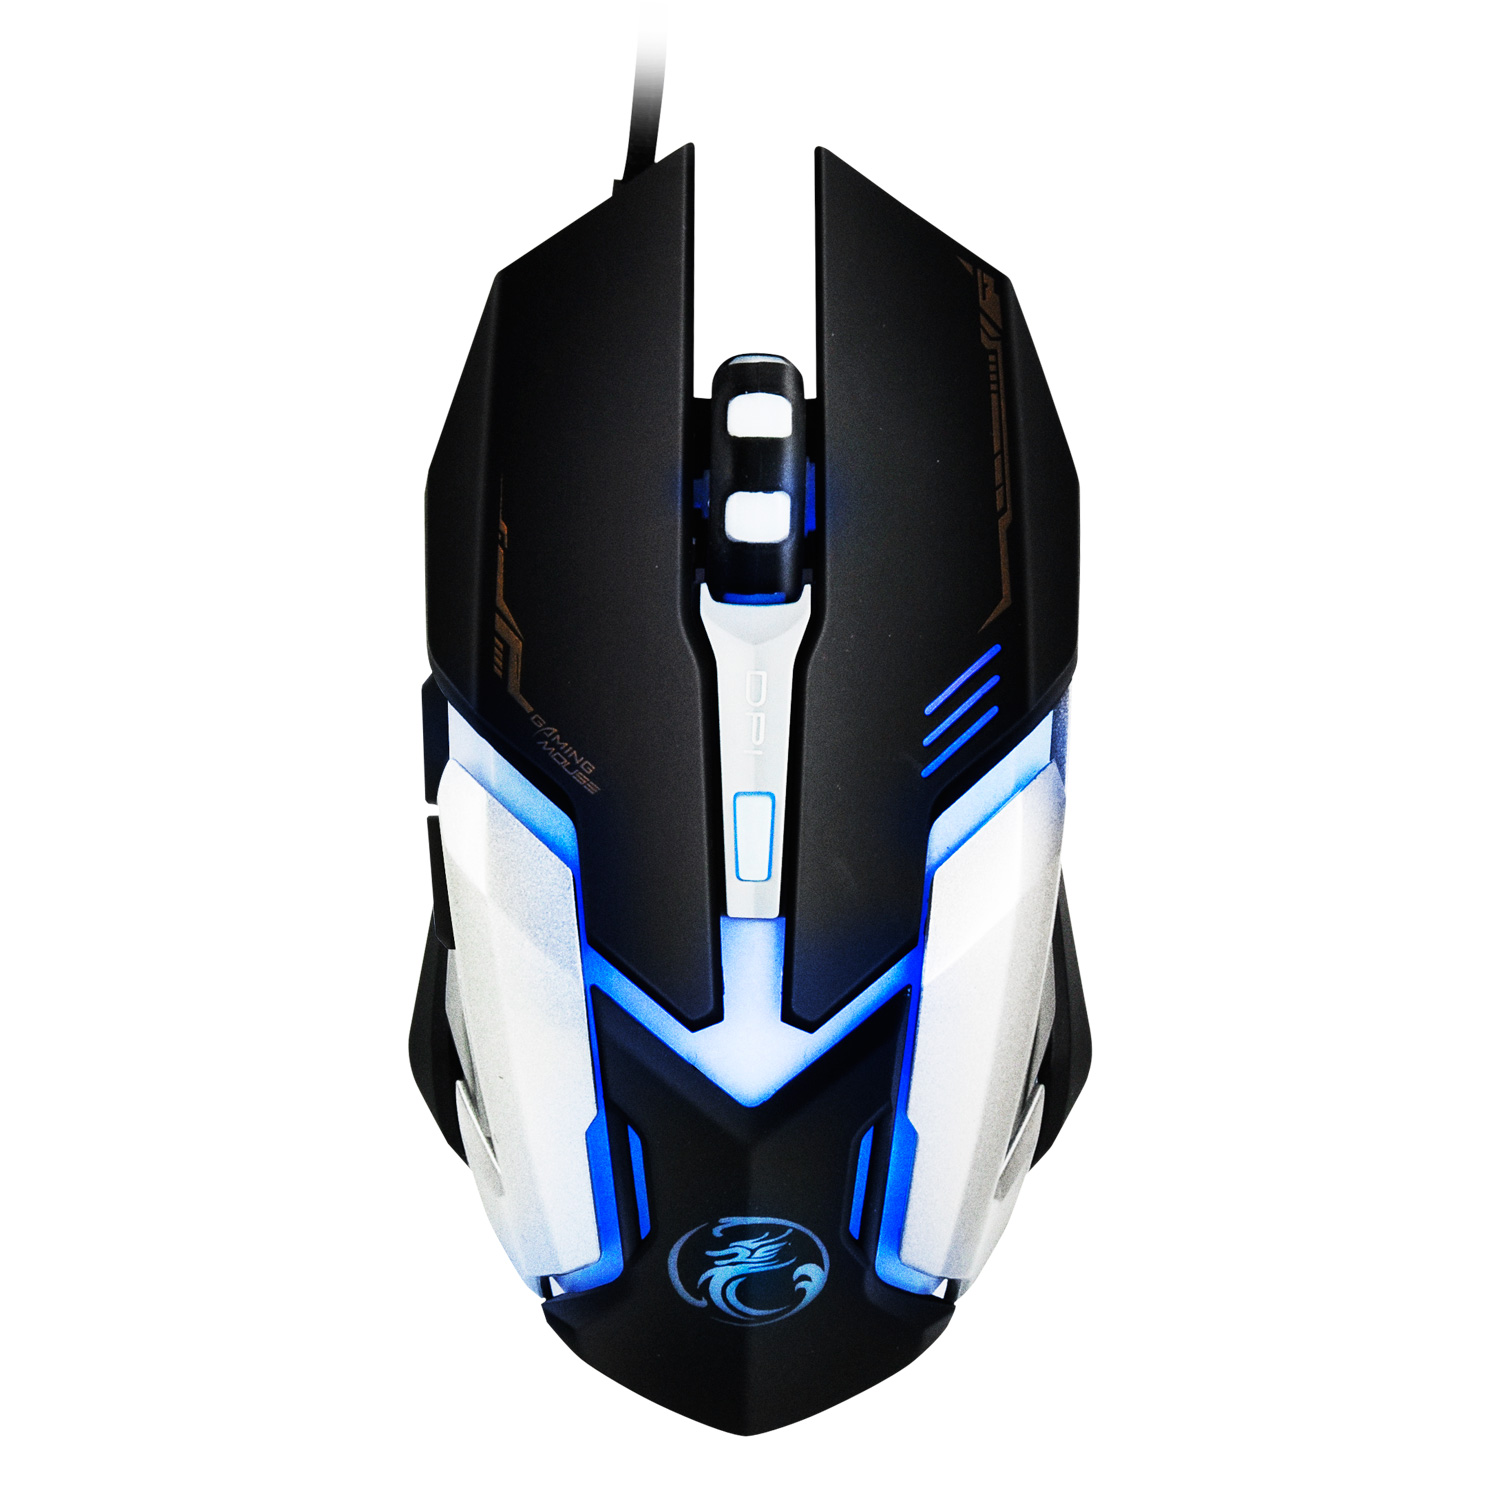 Wired Gaming Mouse 4800DPI USB Mouse Gamer Professional Optical Mouse Mice 6 Buttons E-Sport Computer Mouse Ergonomic Design V6(China (Mainland))